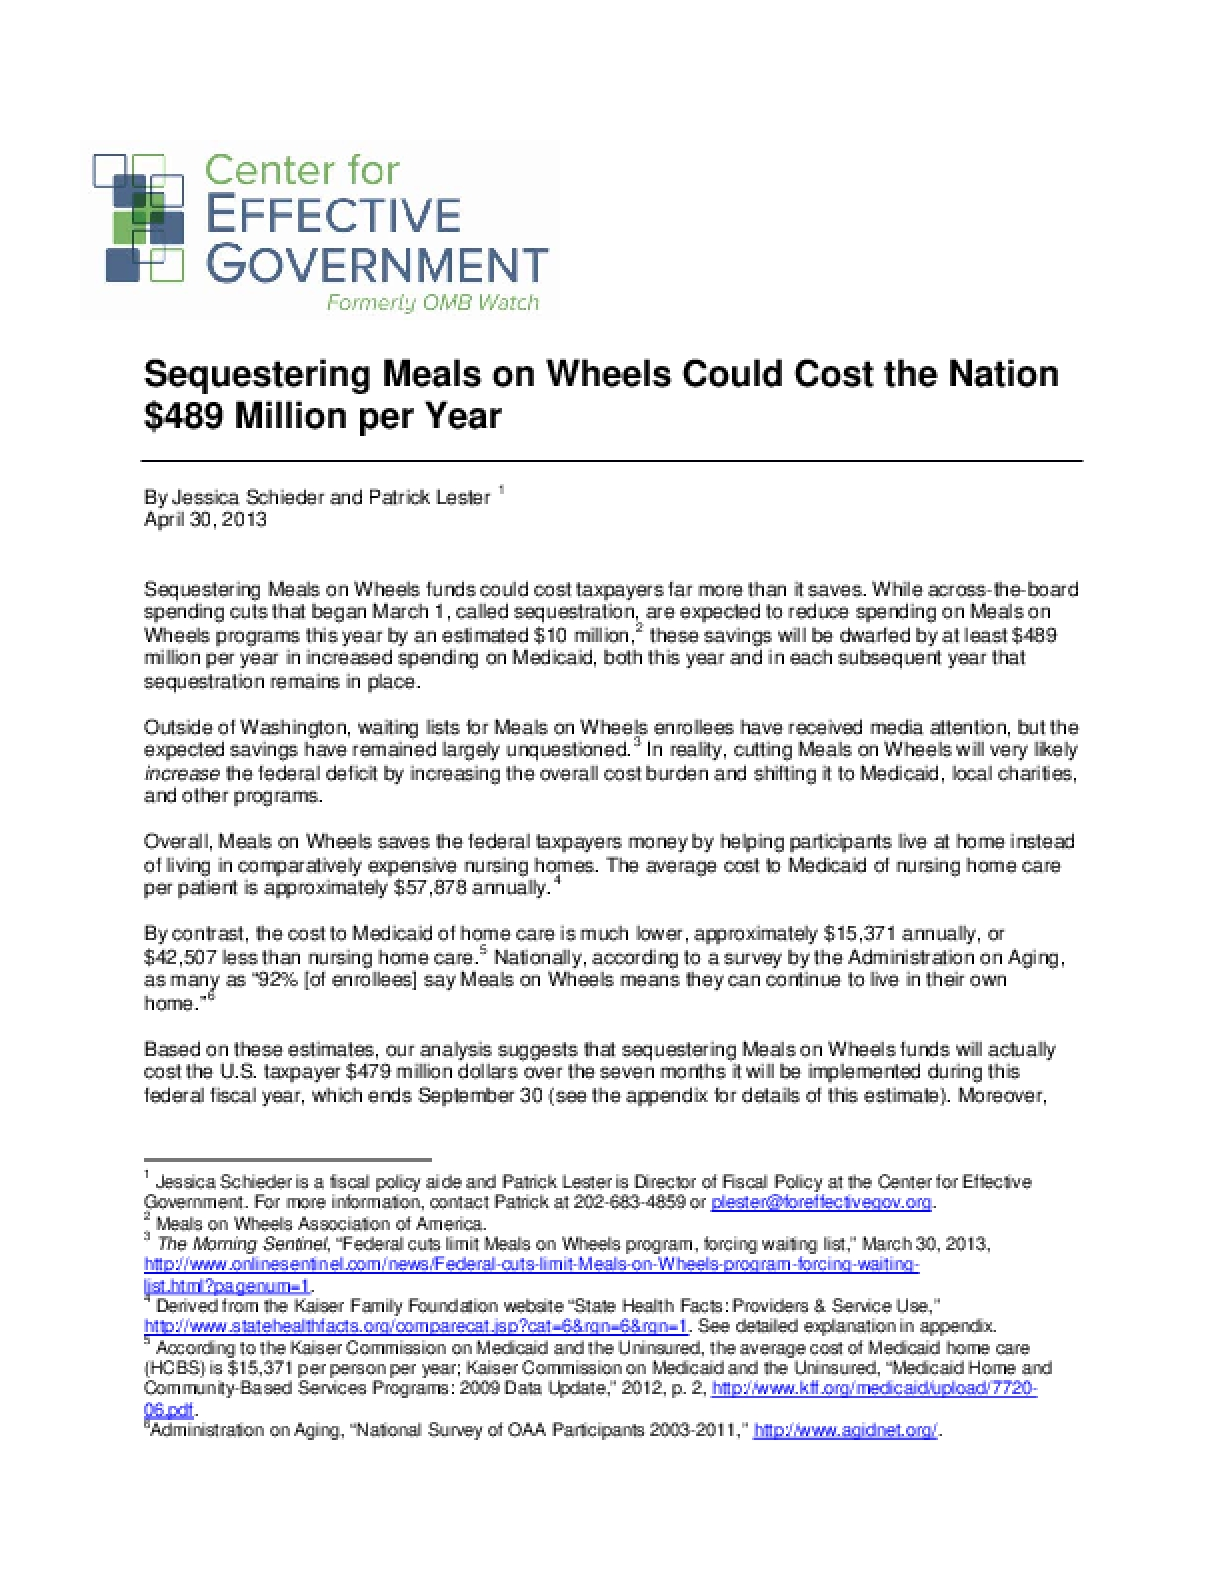 What's At Stake: Sequestering Meals on Wheels Could Cost the Nation $489 Million per Year